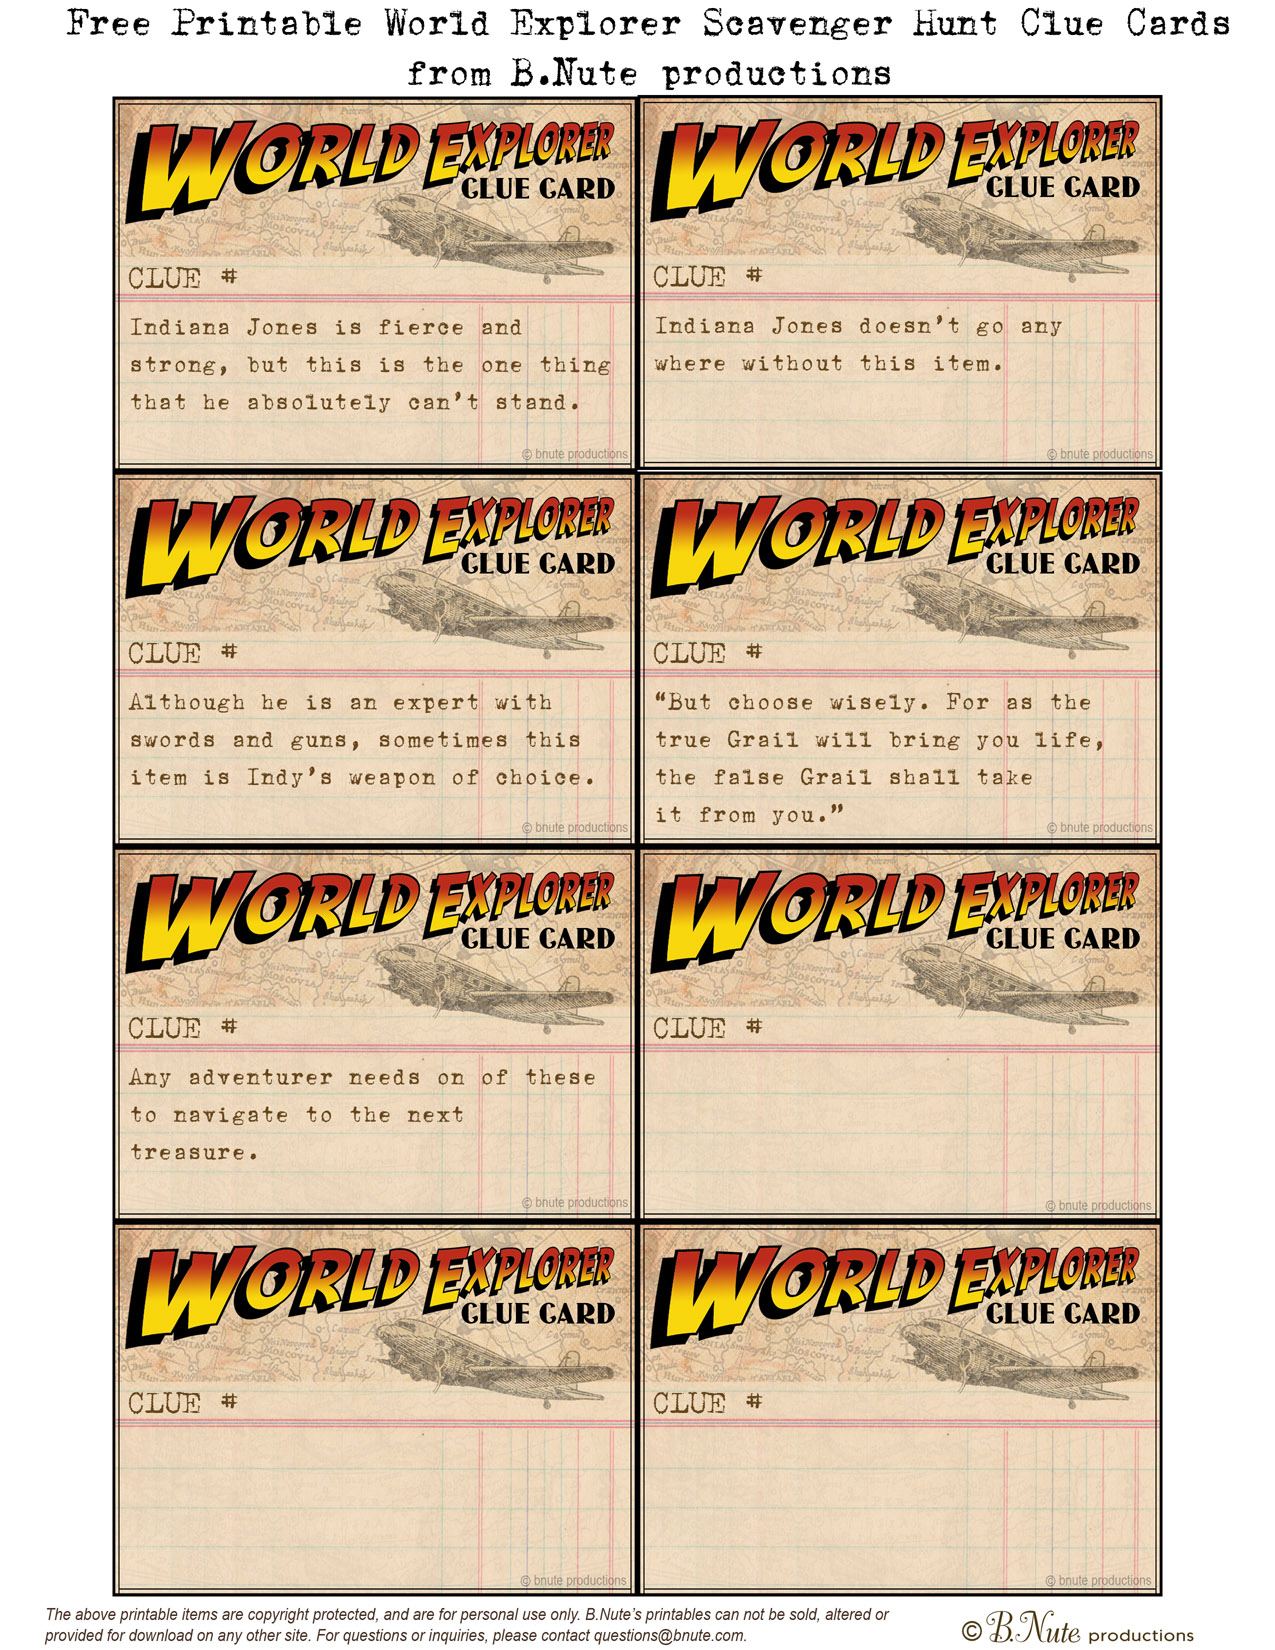 photo about Clue Printable Sheets known as bnute productions: Totally free Printable Entire world Explorer Indiana